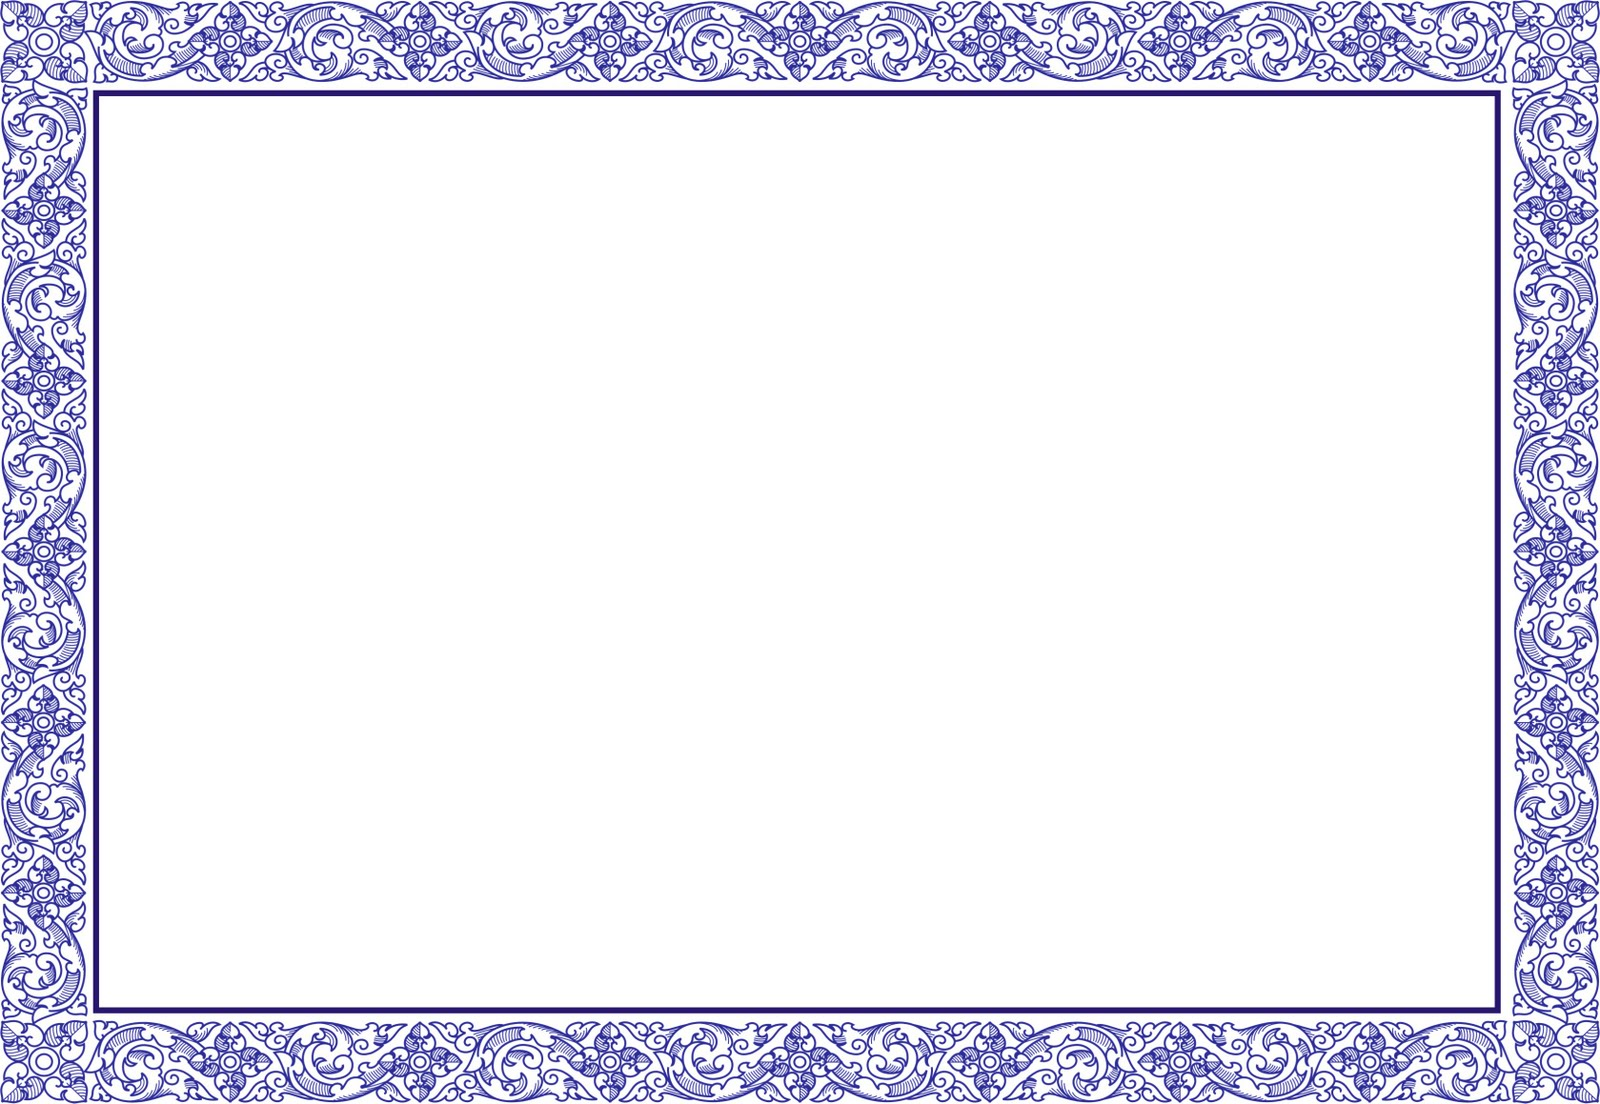 Certificate border pattern pictures to pin on pinterest for High school diploma certificate fancy design templates